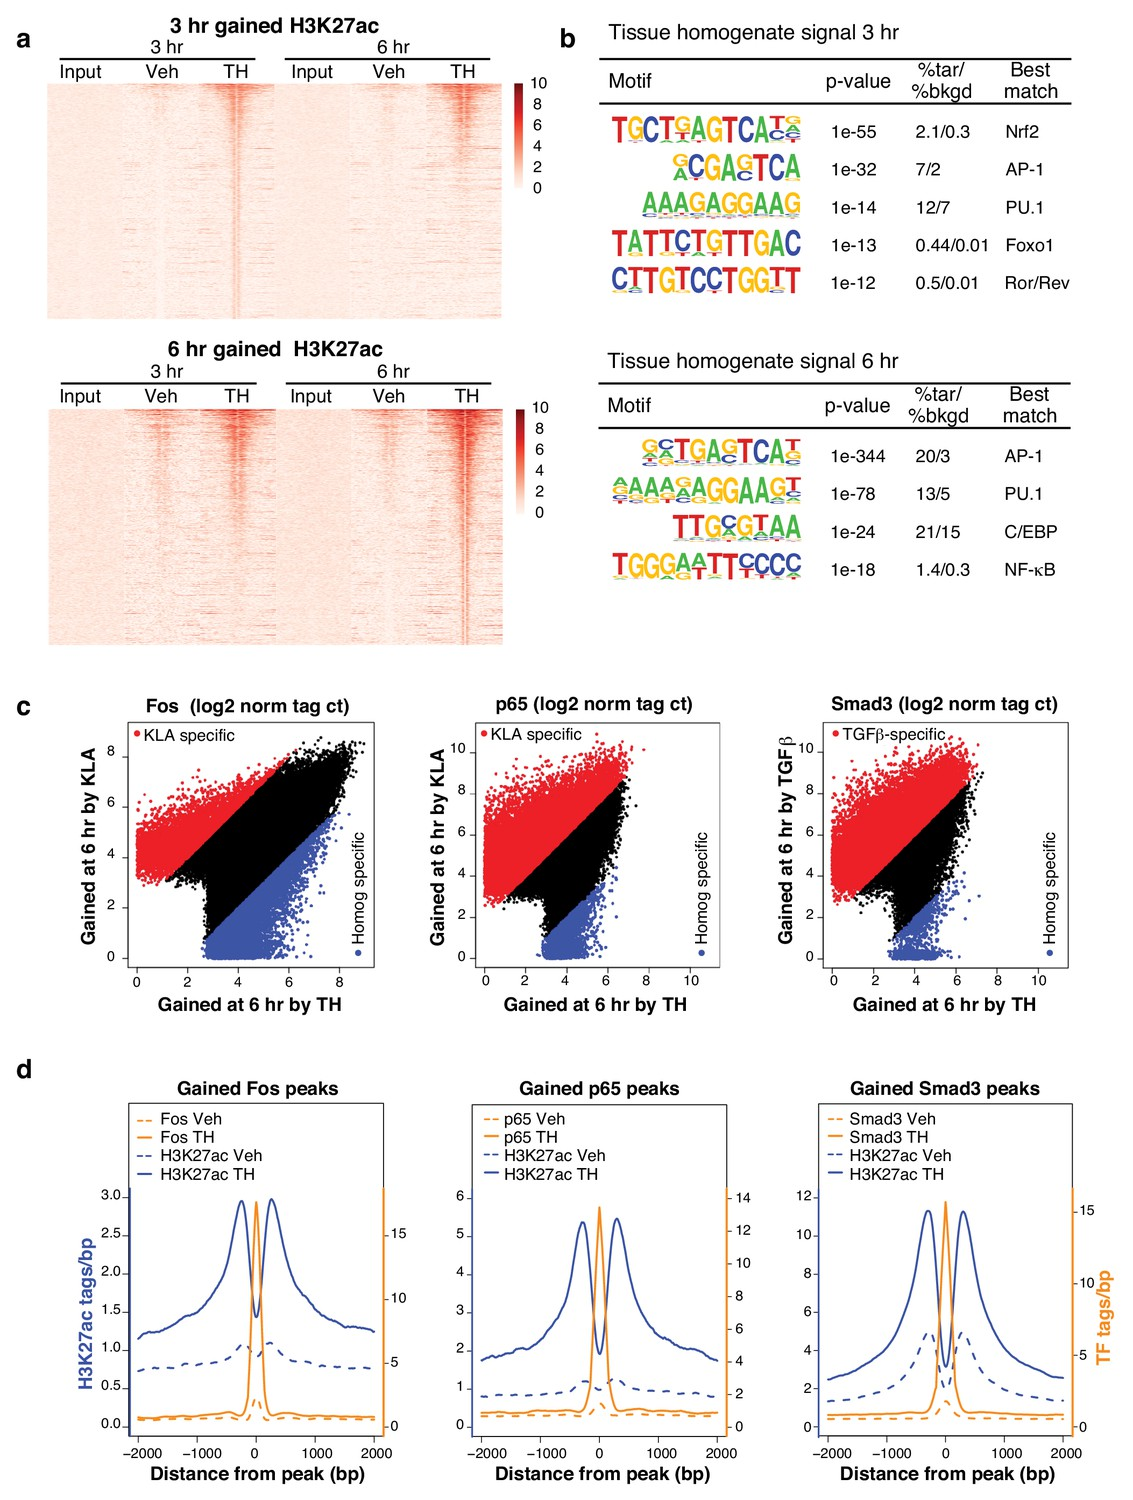 Tissue damage drives co-localization of NF-κB, Smad3, and